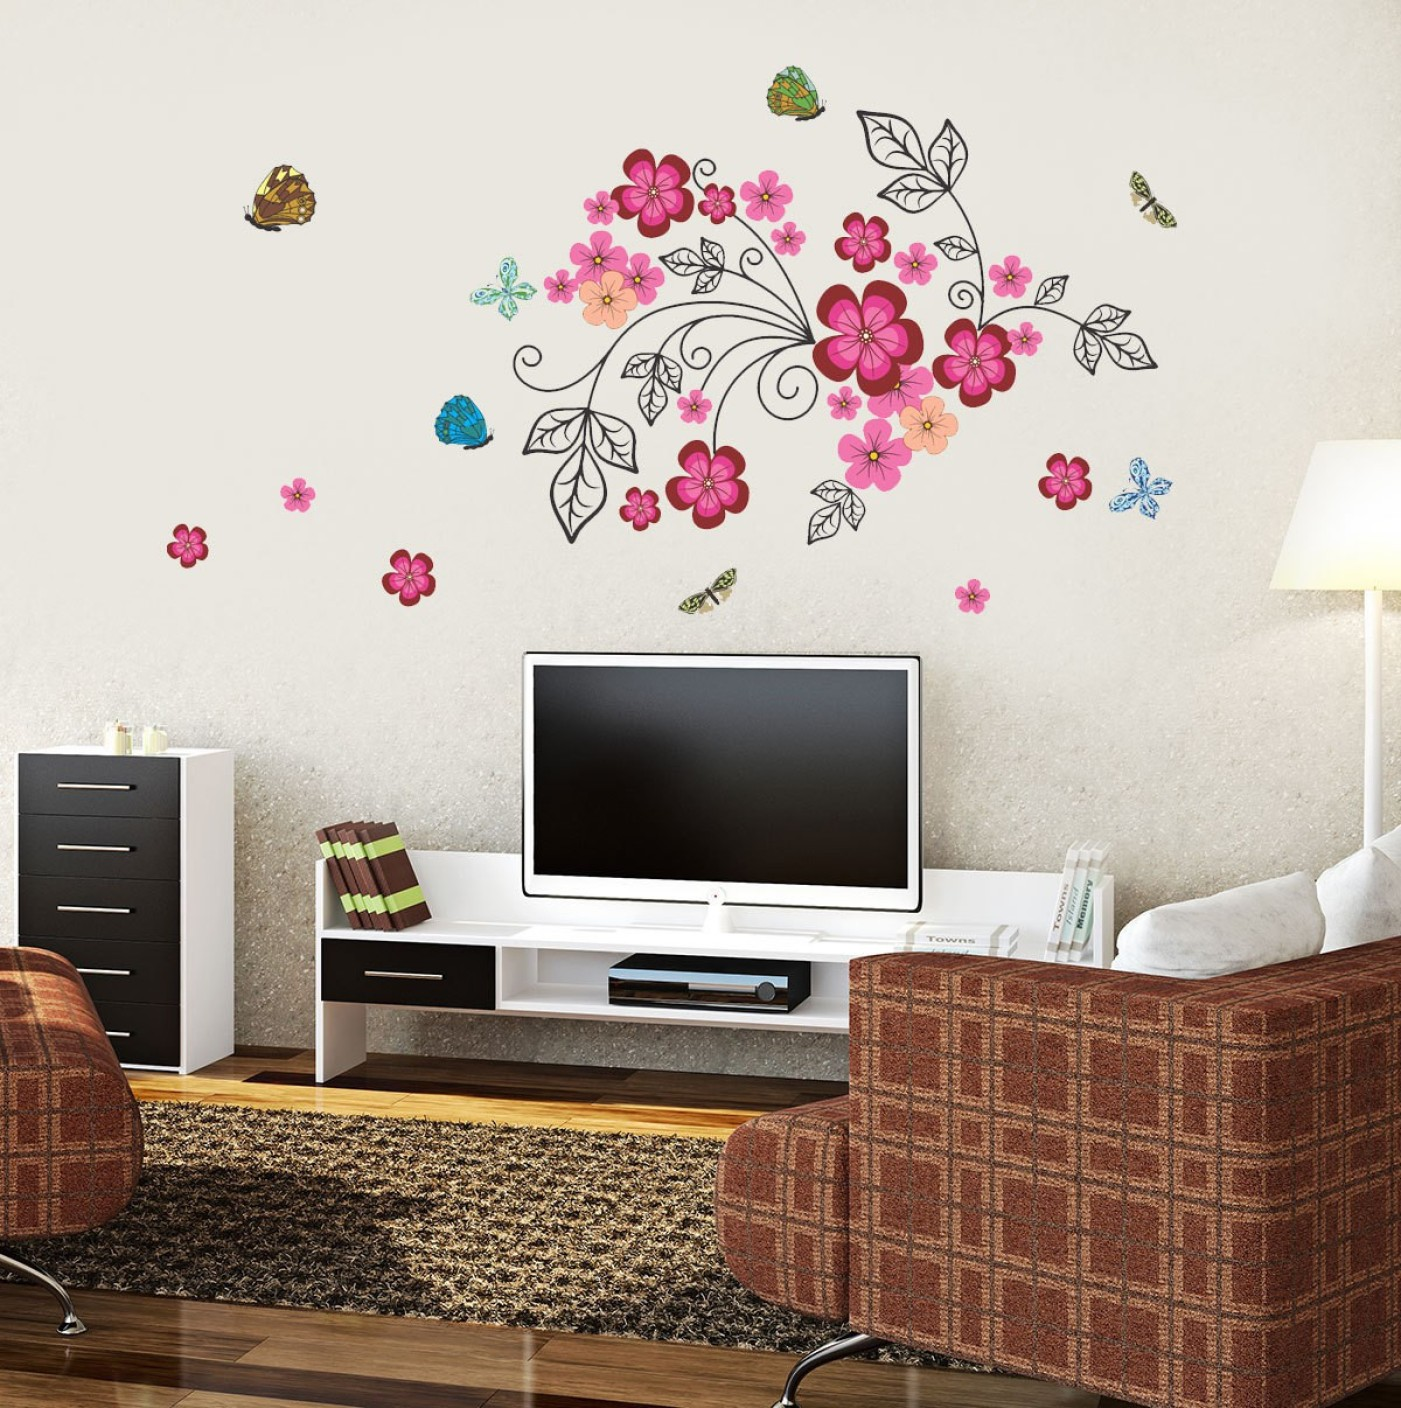 New Way Decals Wall Sticker Floral Botanical Wallpaper